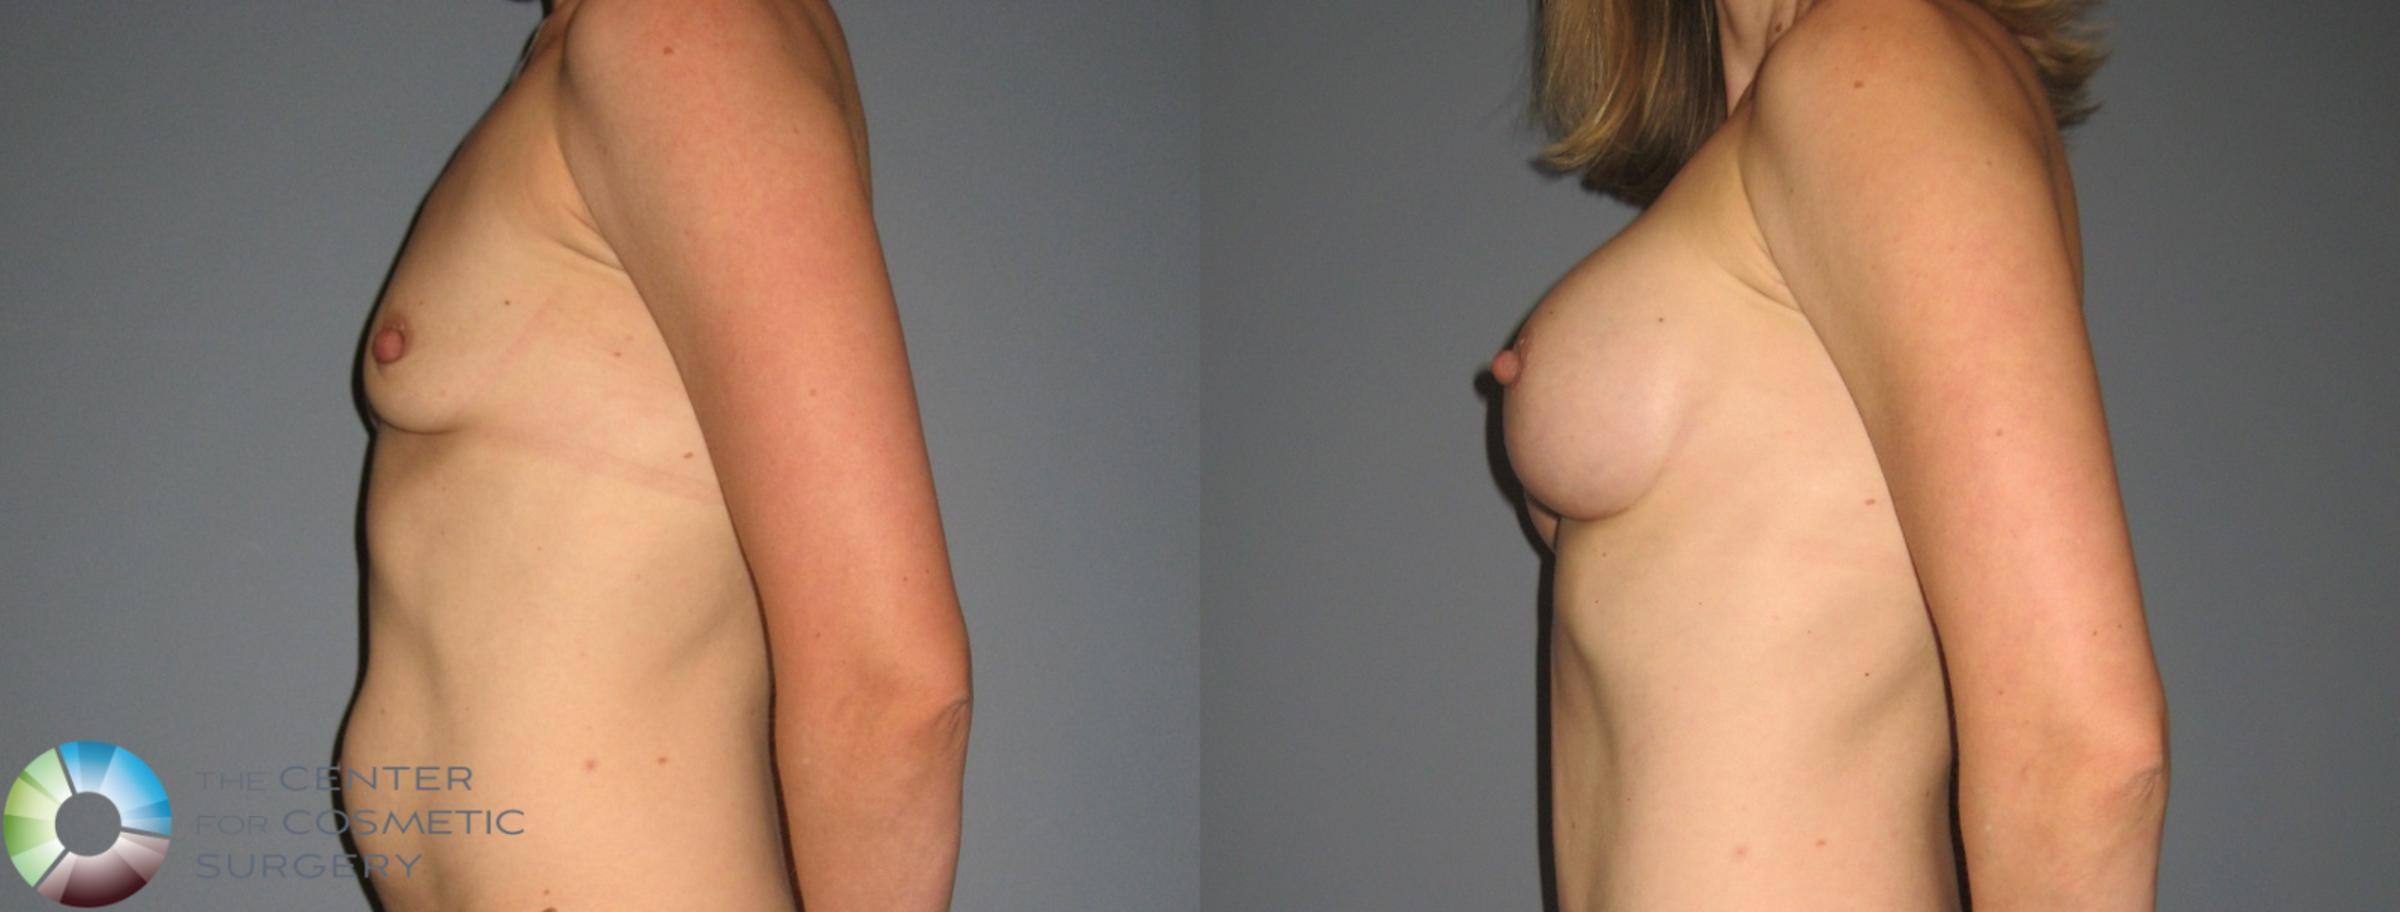 Breast Augmentation Case 878 Before & After View #3 | Golden, CO | The Center for Cosmetic Surgery